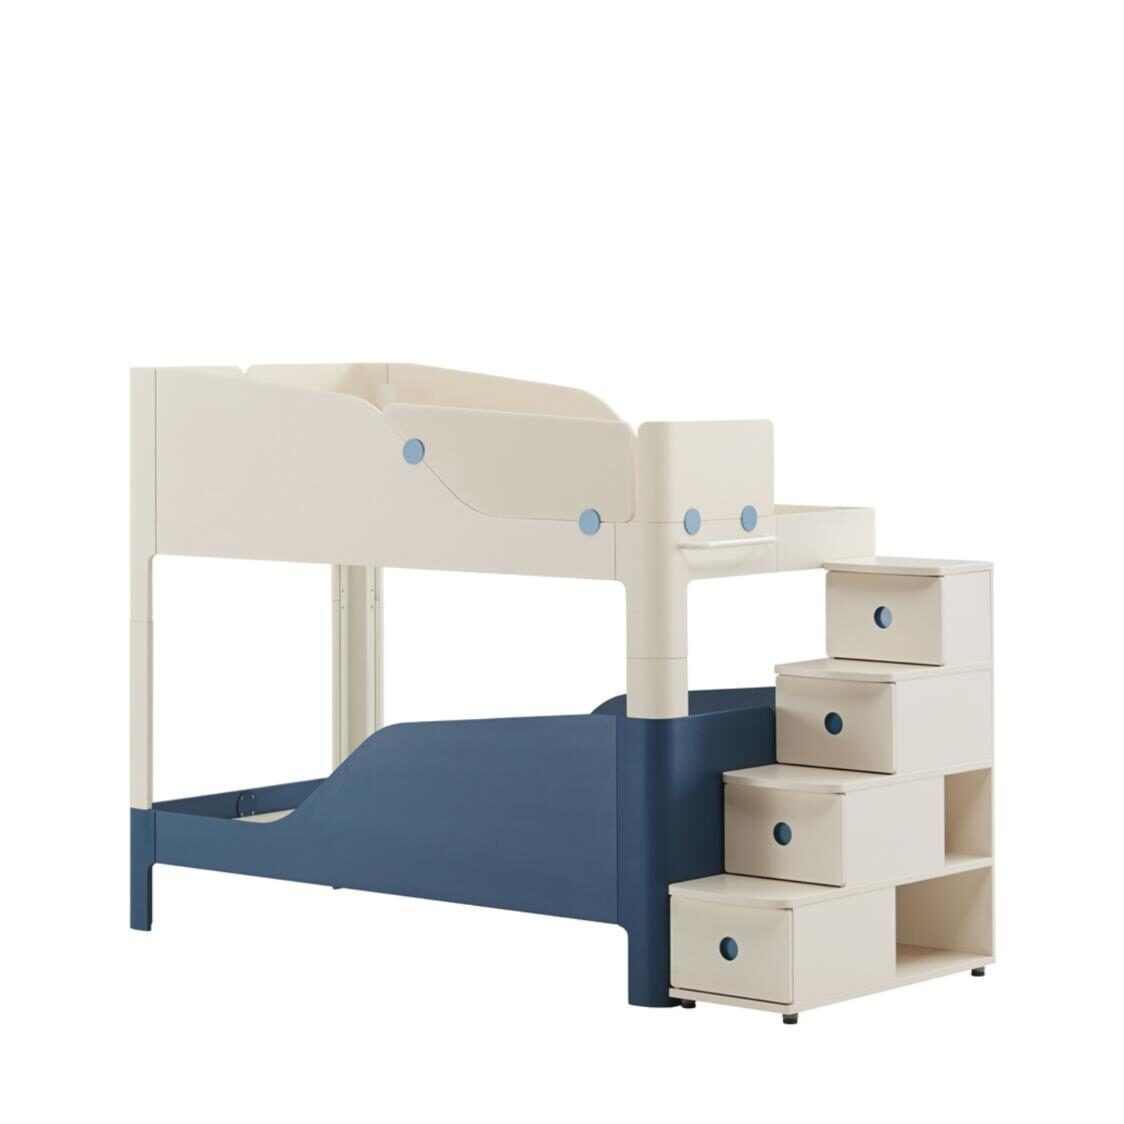 Tinkle Pop 2 Story Bed Stairs IVKB Ivory Blue